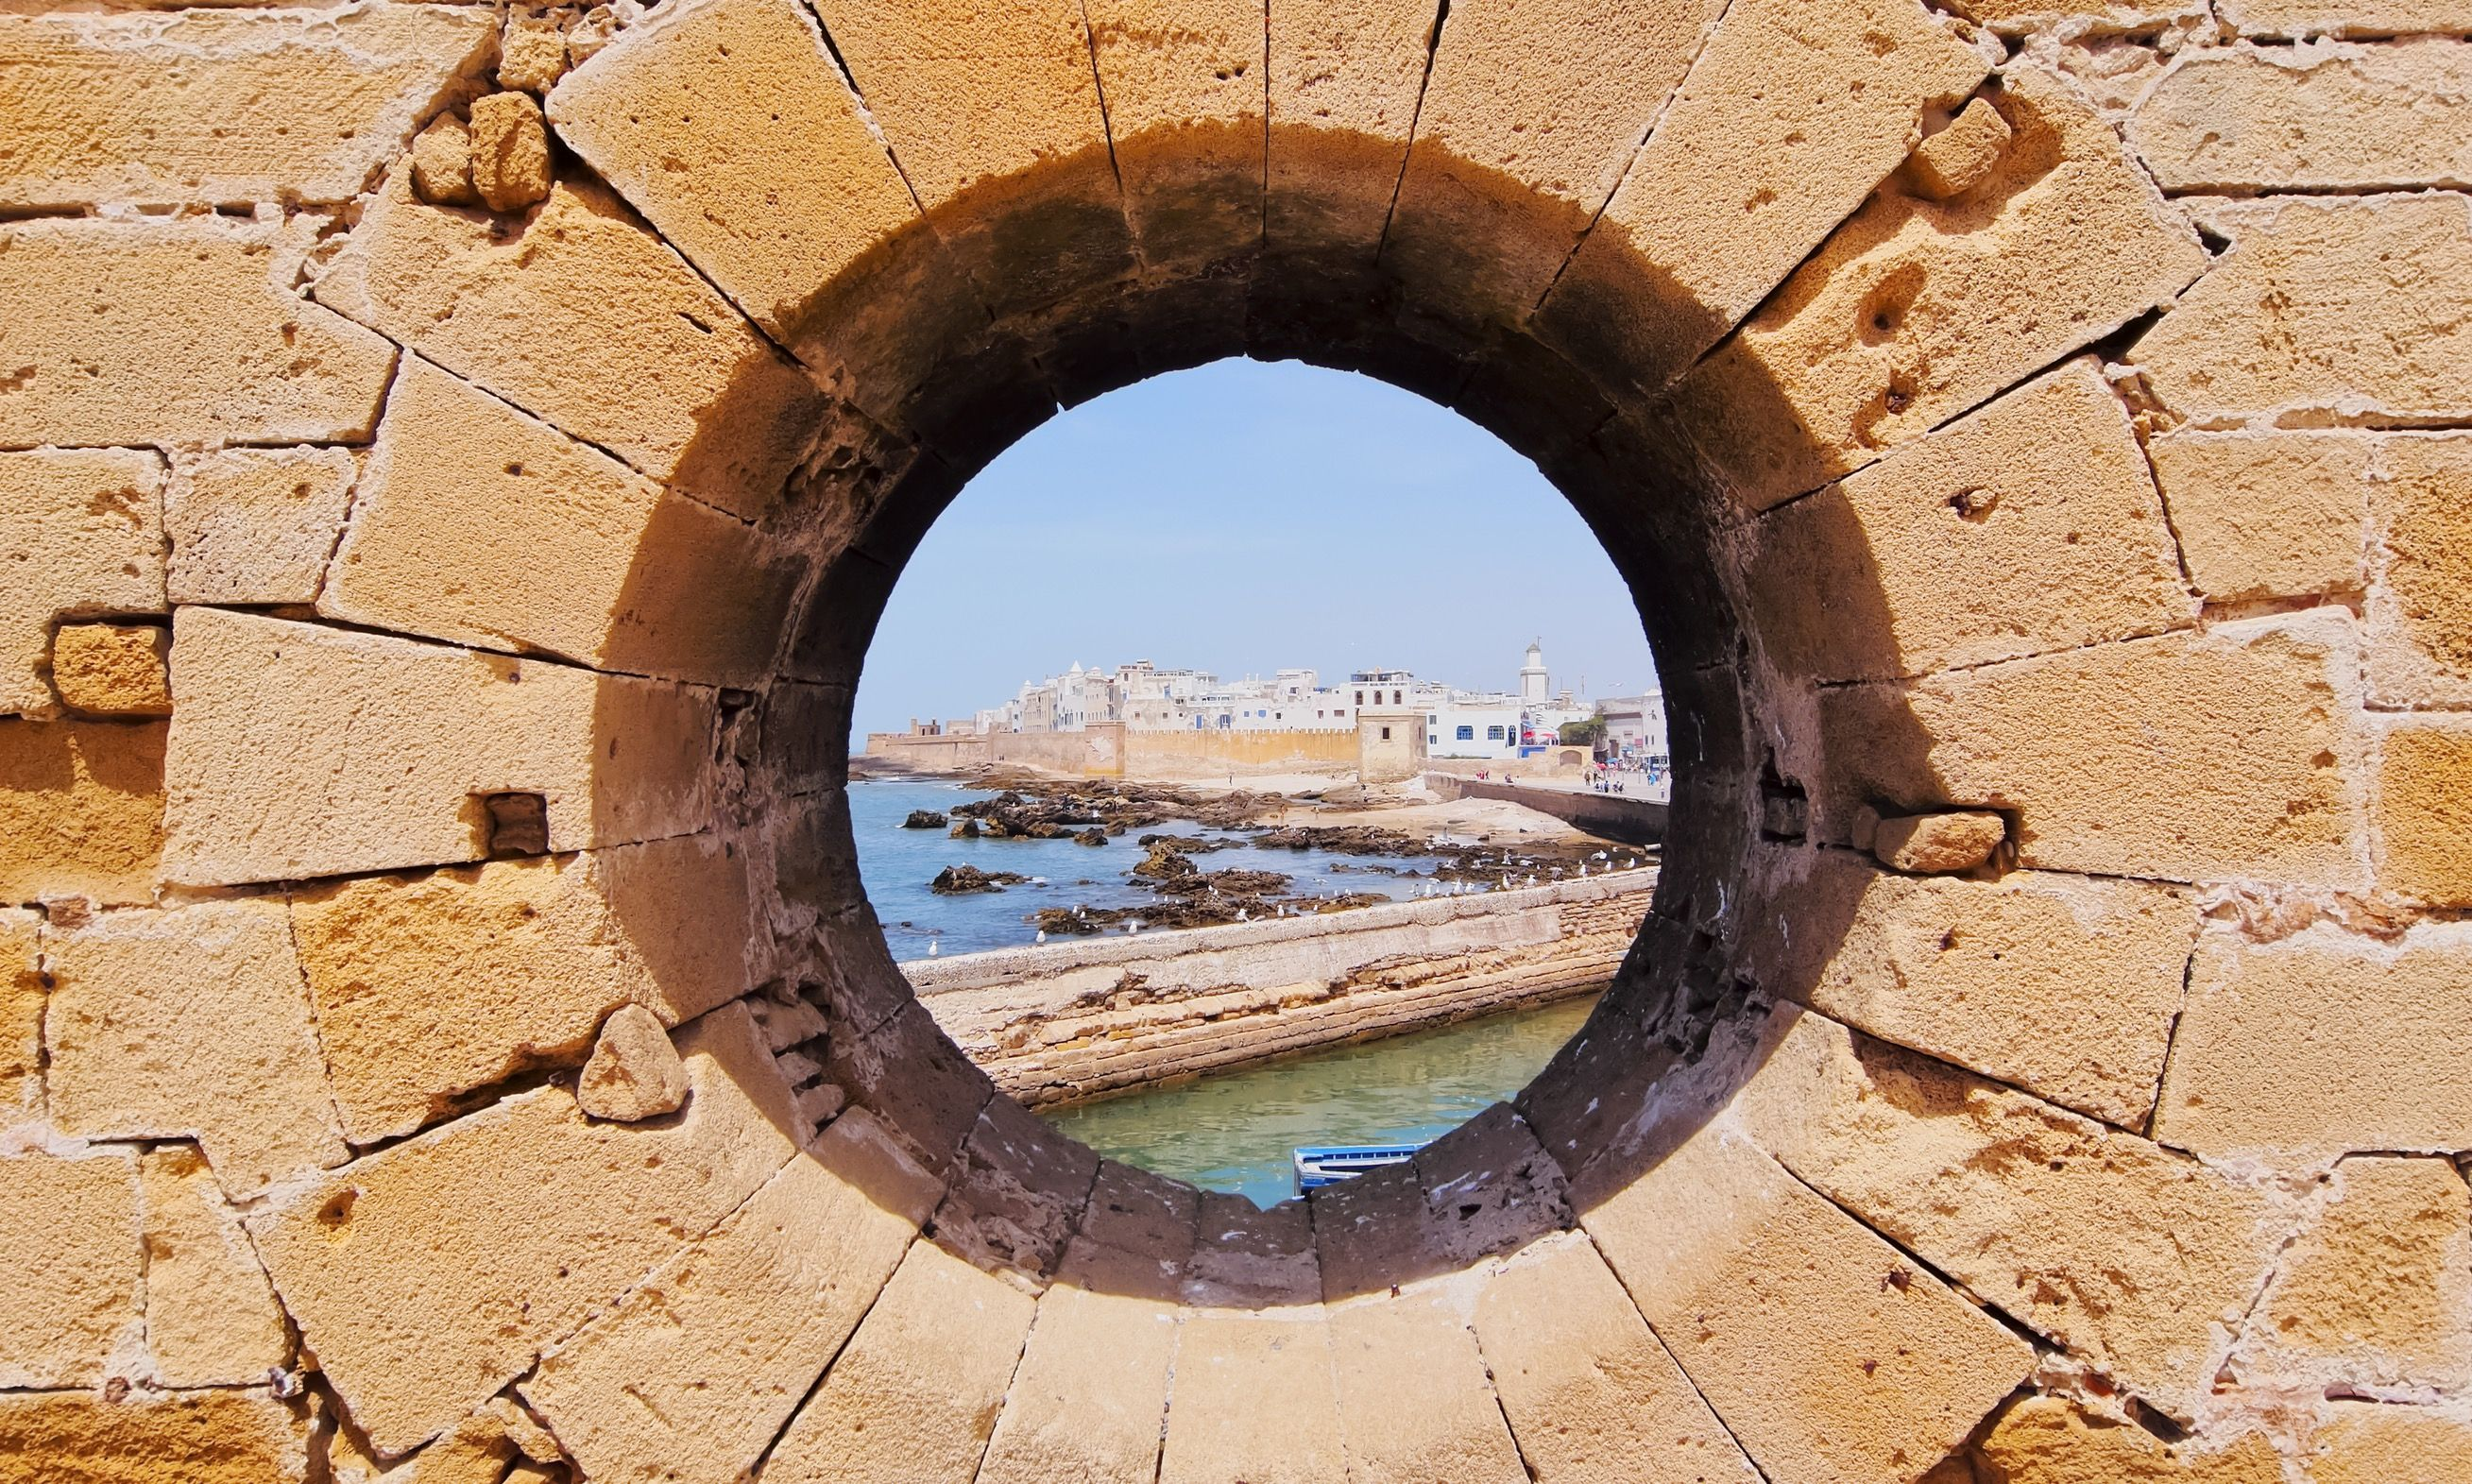 View through hole in the walls of Essaouira (Dreamstime)